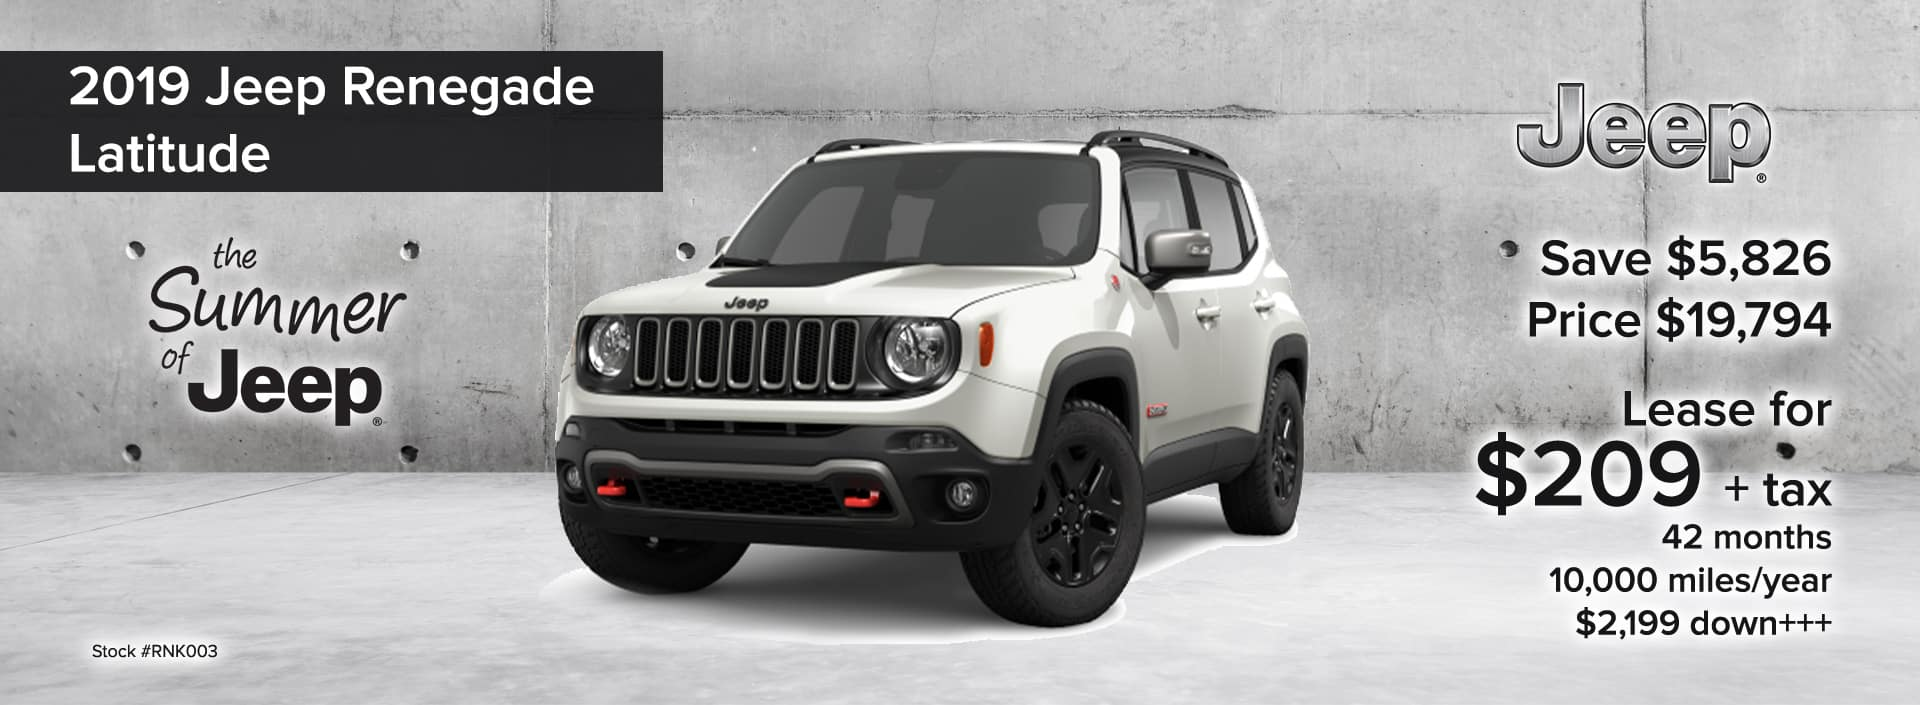 2019 Jeep Renegade Latitude The Summer of Jeep Event_August 2019 desktop